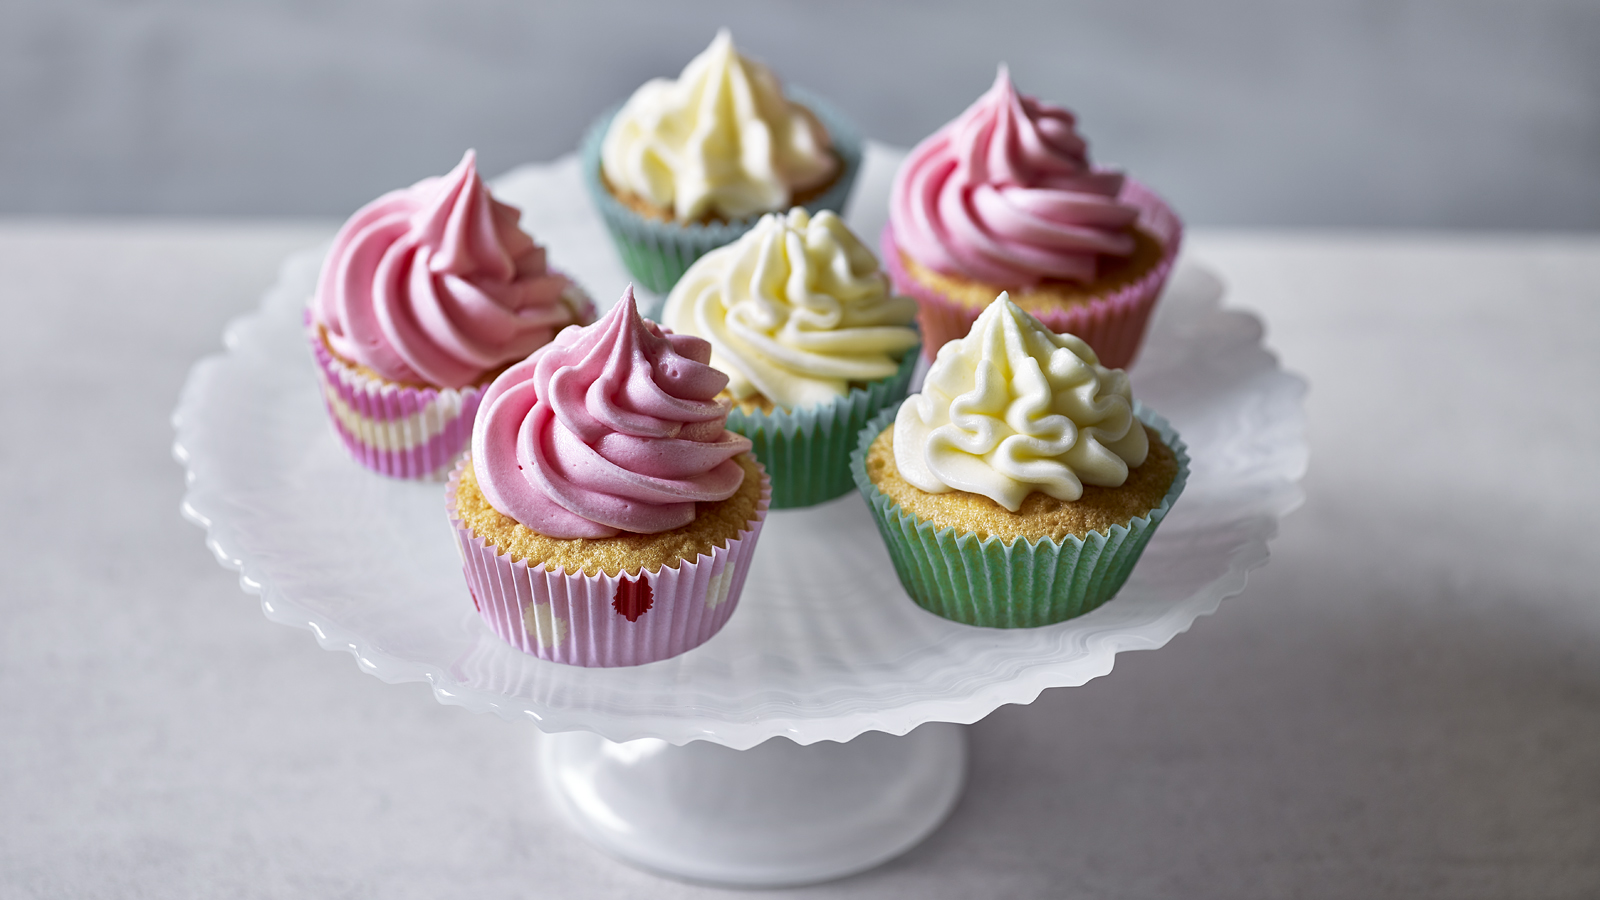 Cupcakes recipe - Dont worry make money